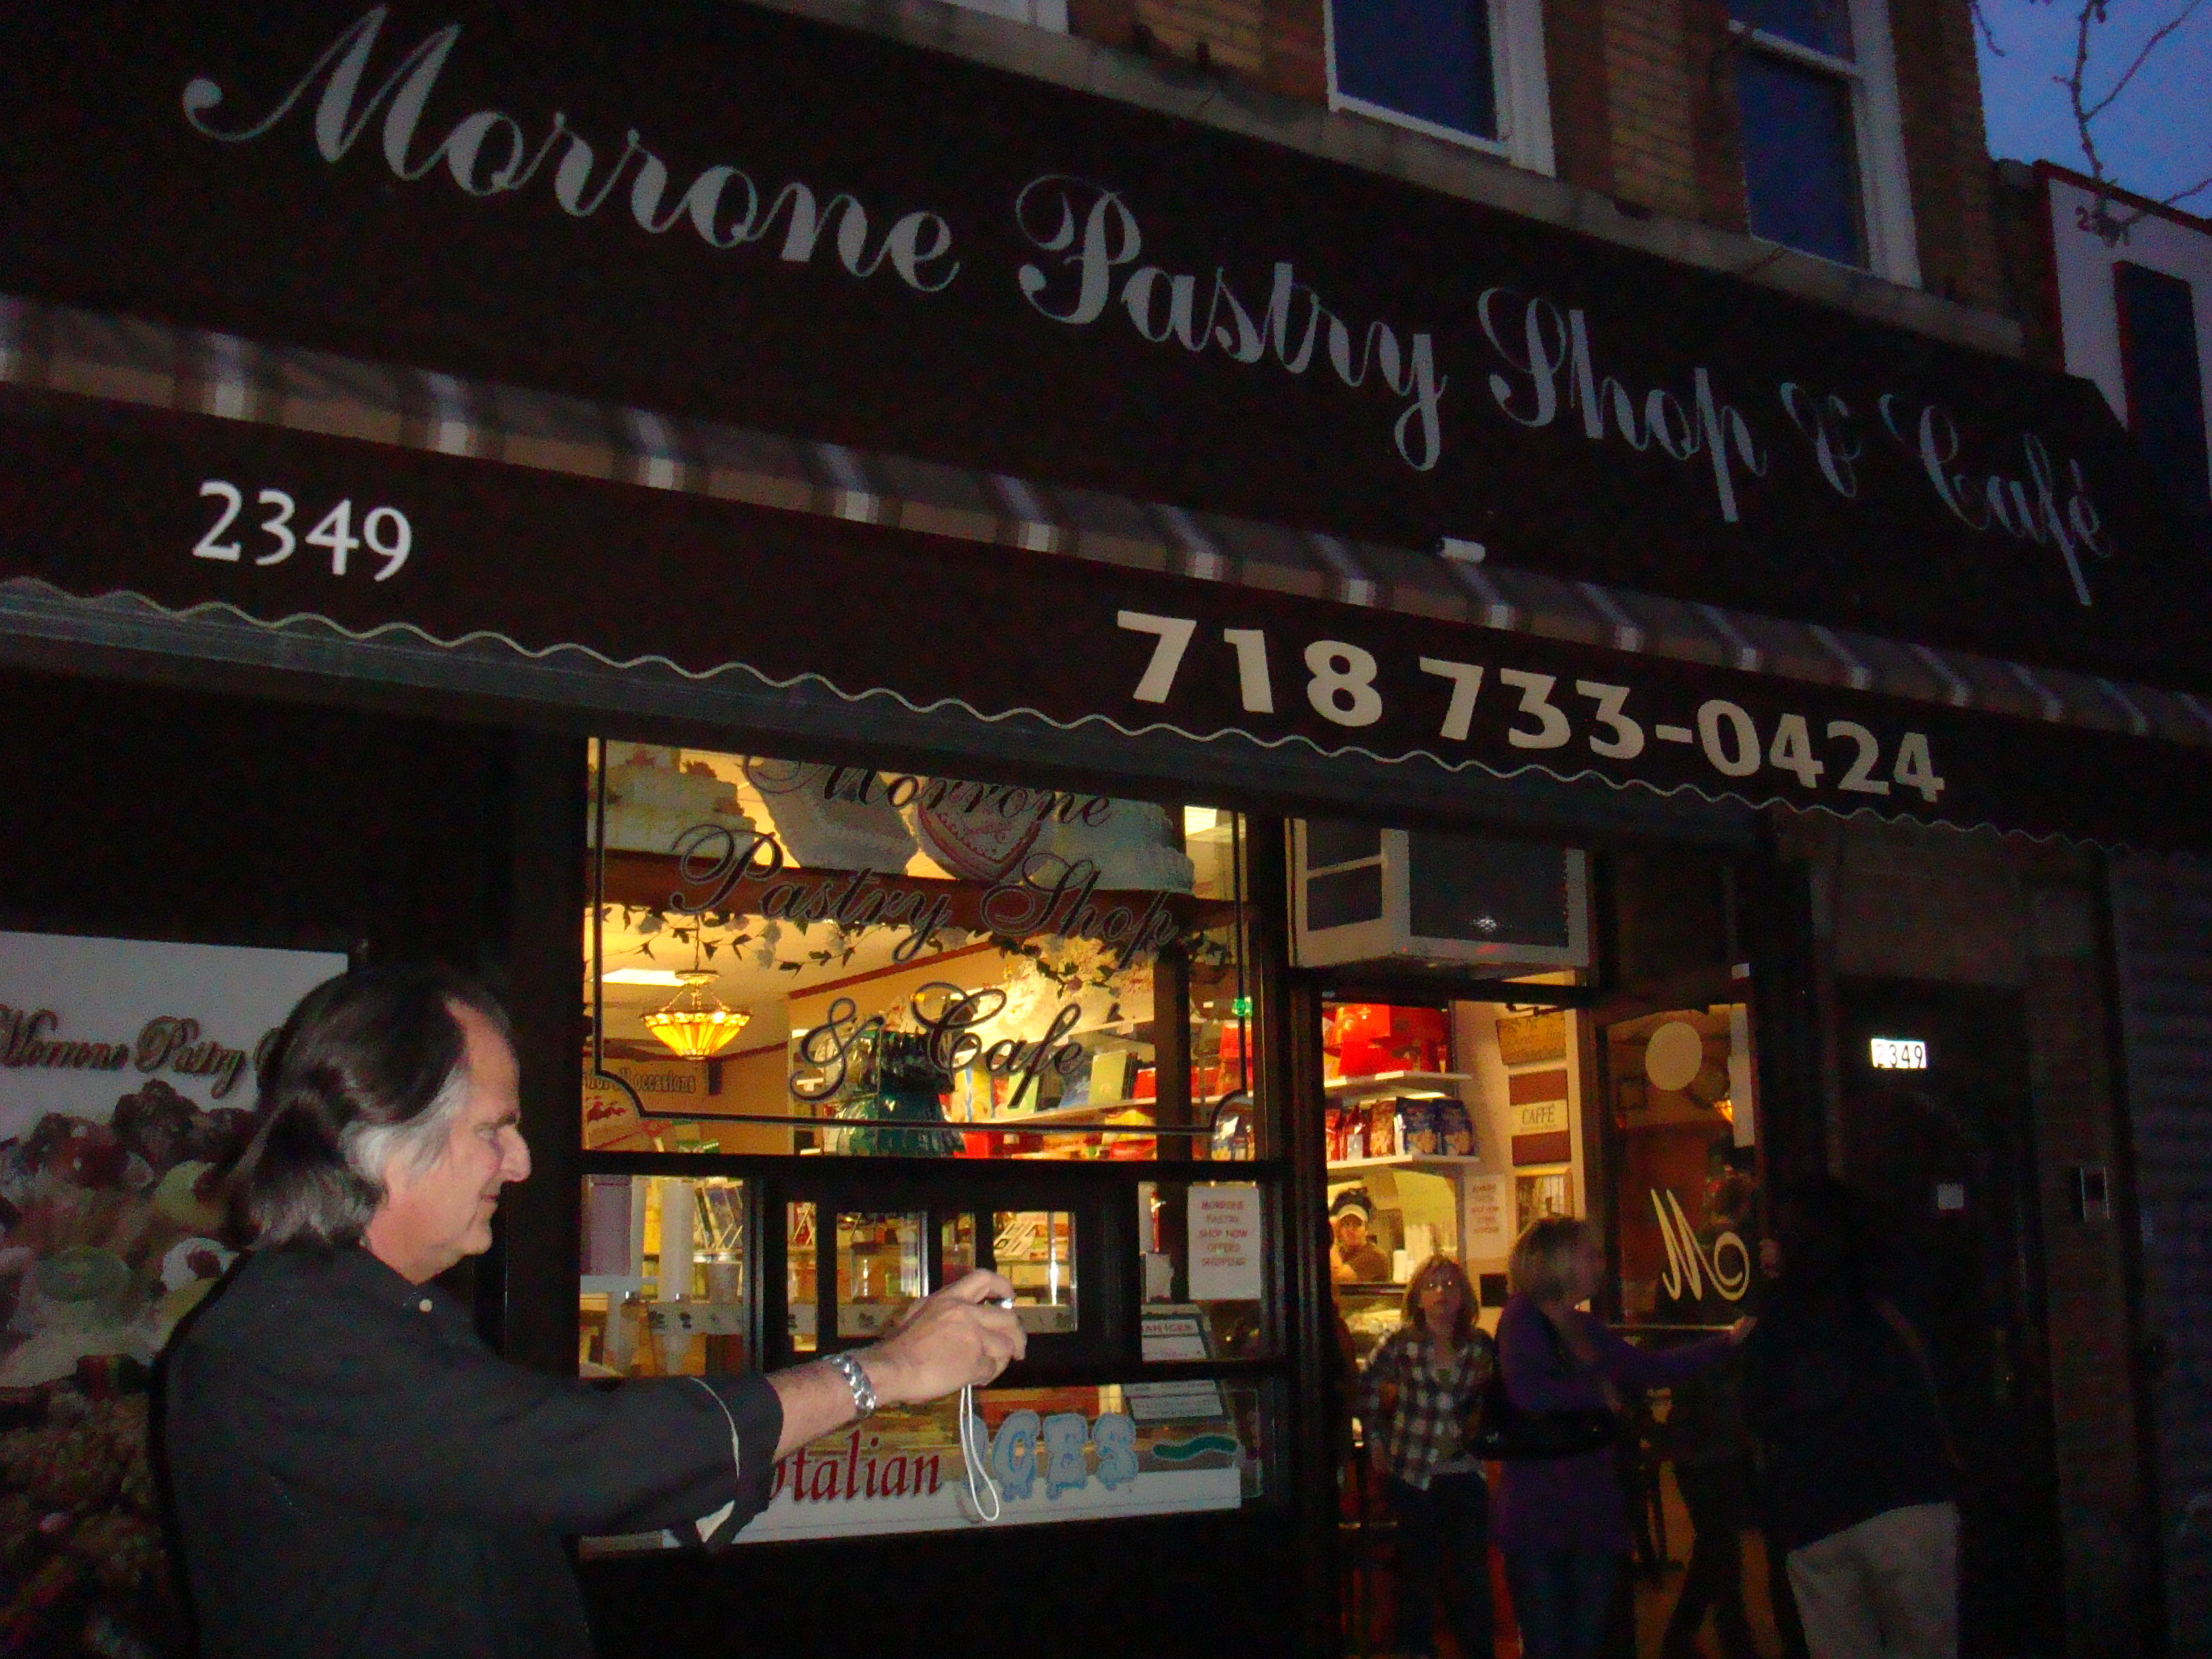 Morrone Pastry Shop